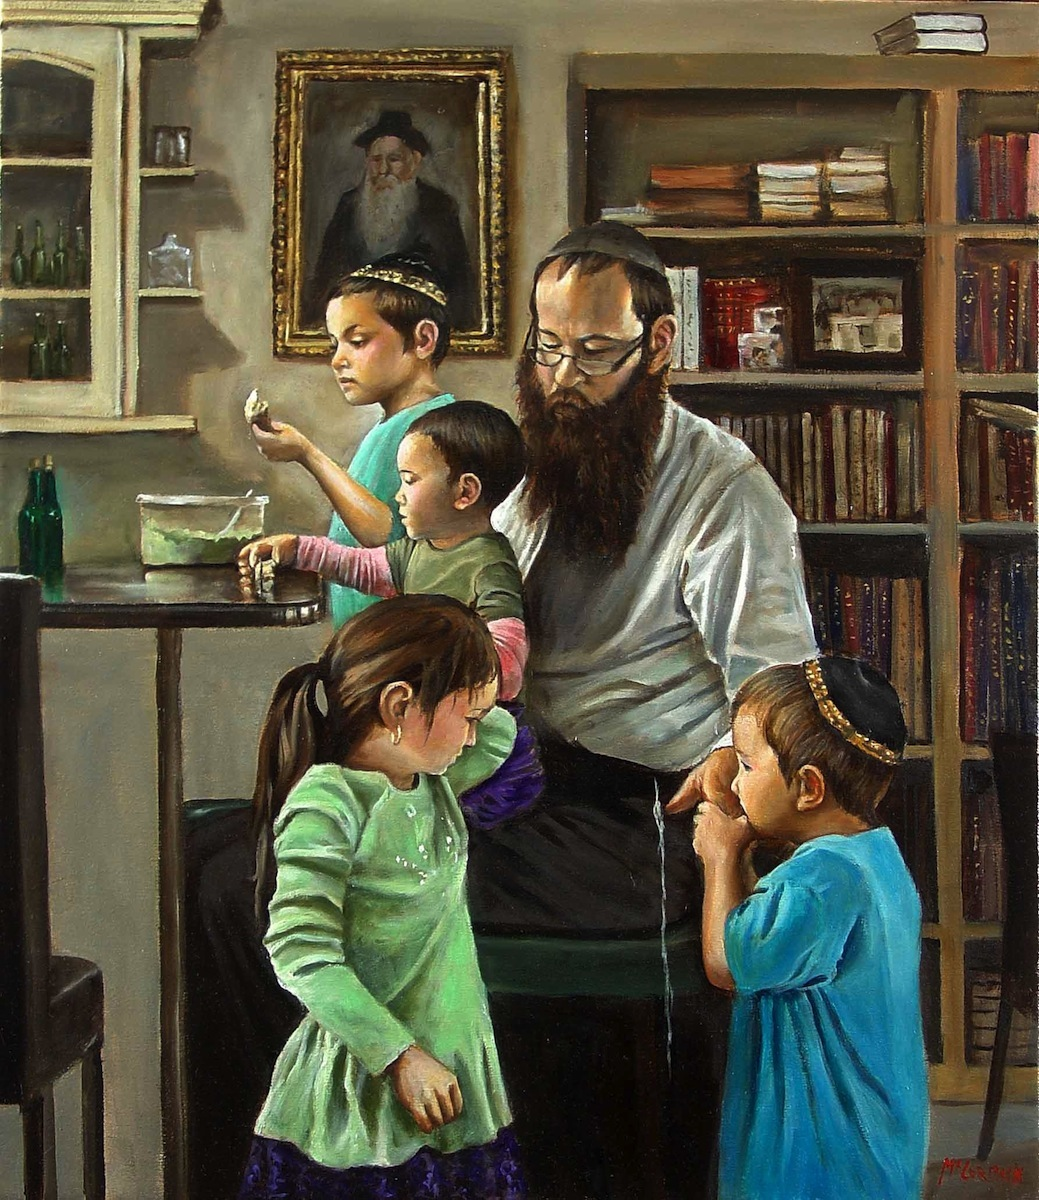 Rabbi Lieberow and Family; oil on canvas by Harry McCormick Courtesy Chassidic Art Institute